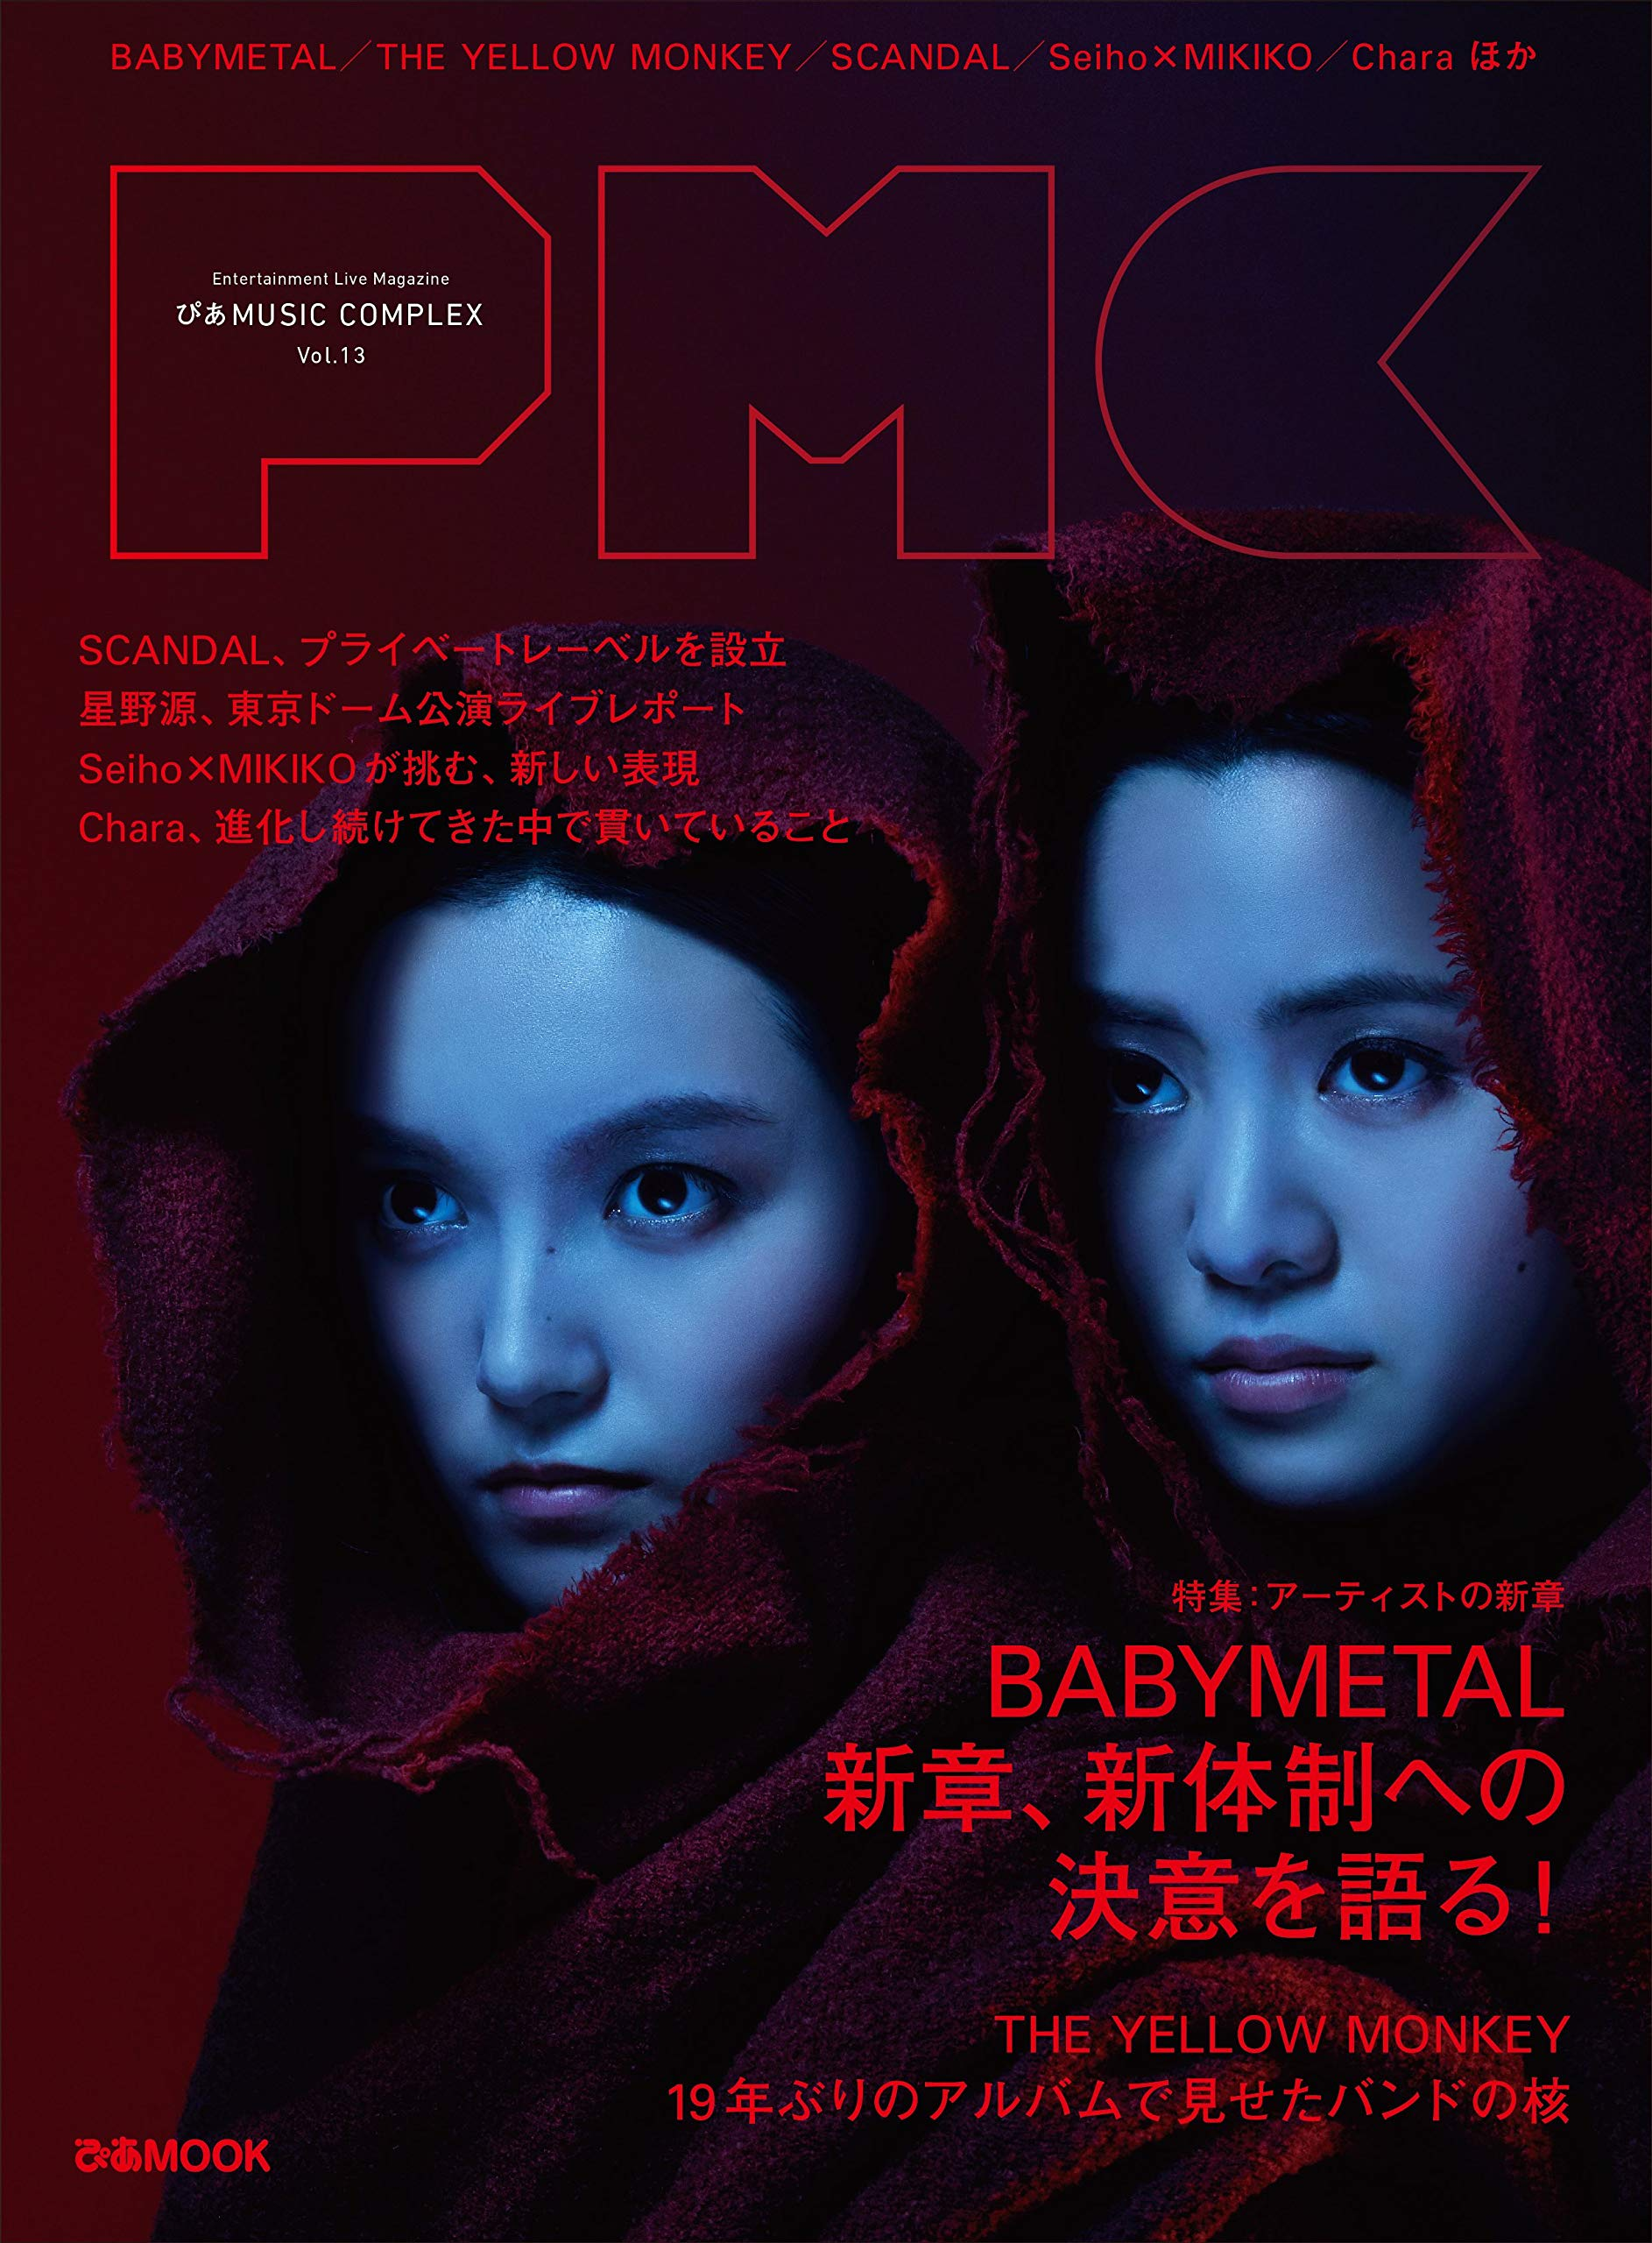 Babymetal PMC Interview